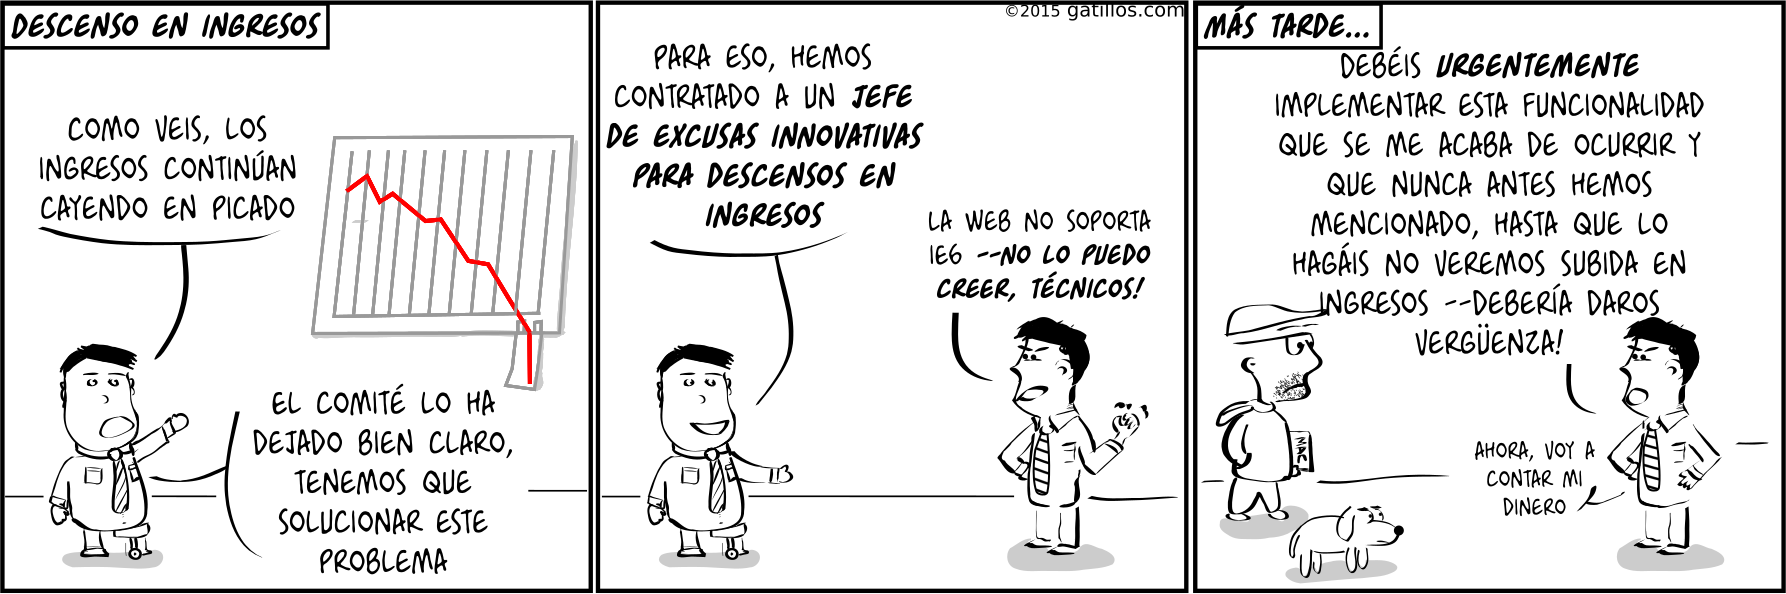 Paul the innovator (78): Descenso en ingresos